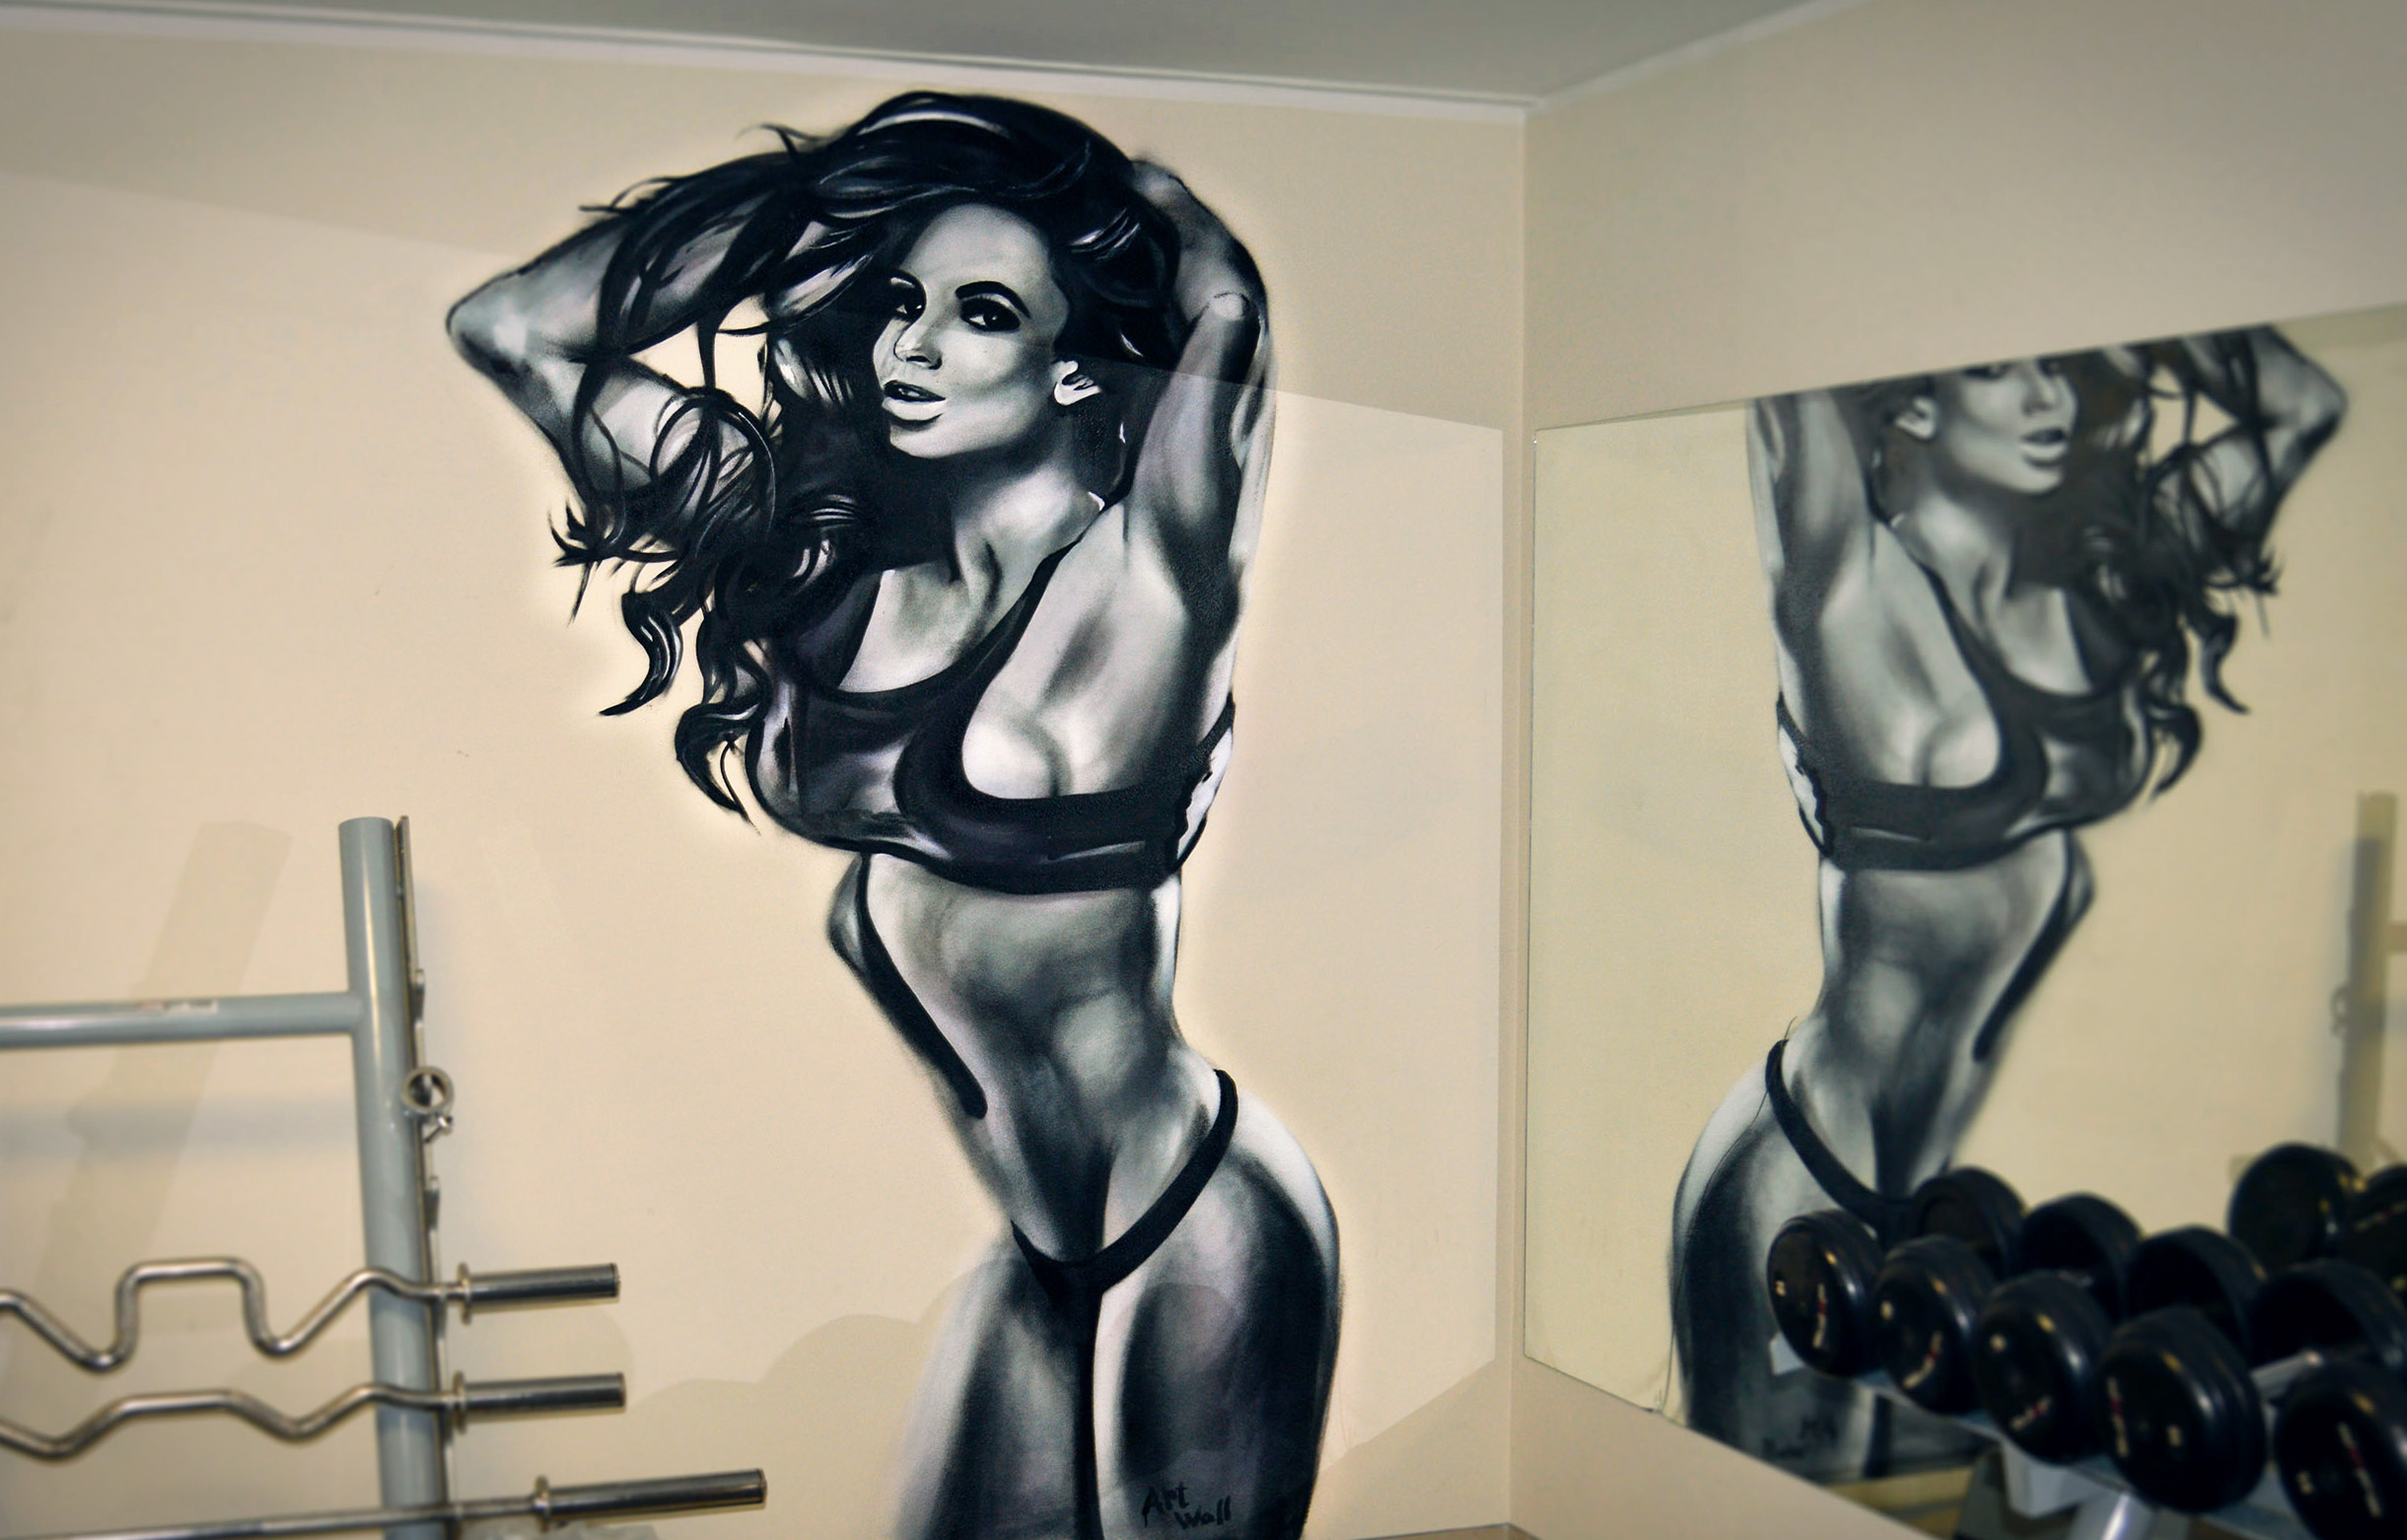 Fitness_girl artwall